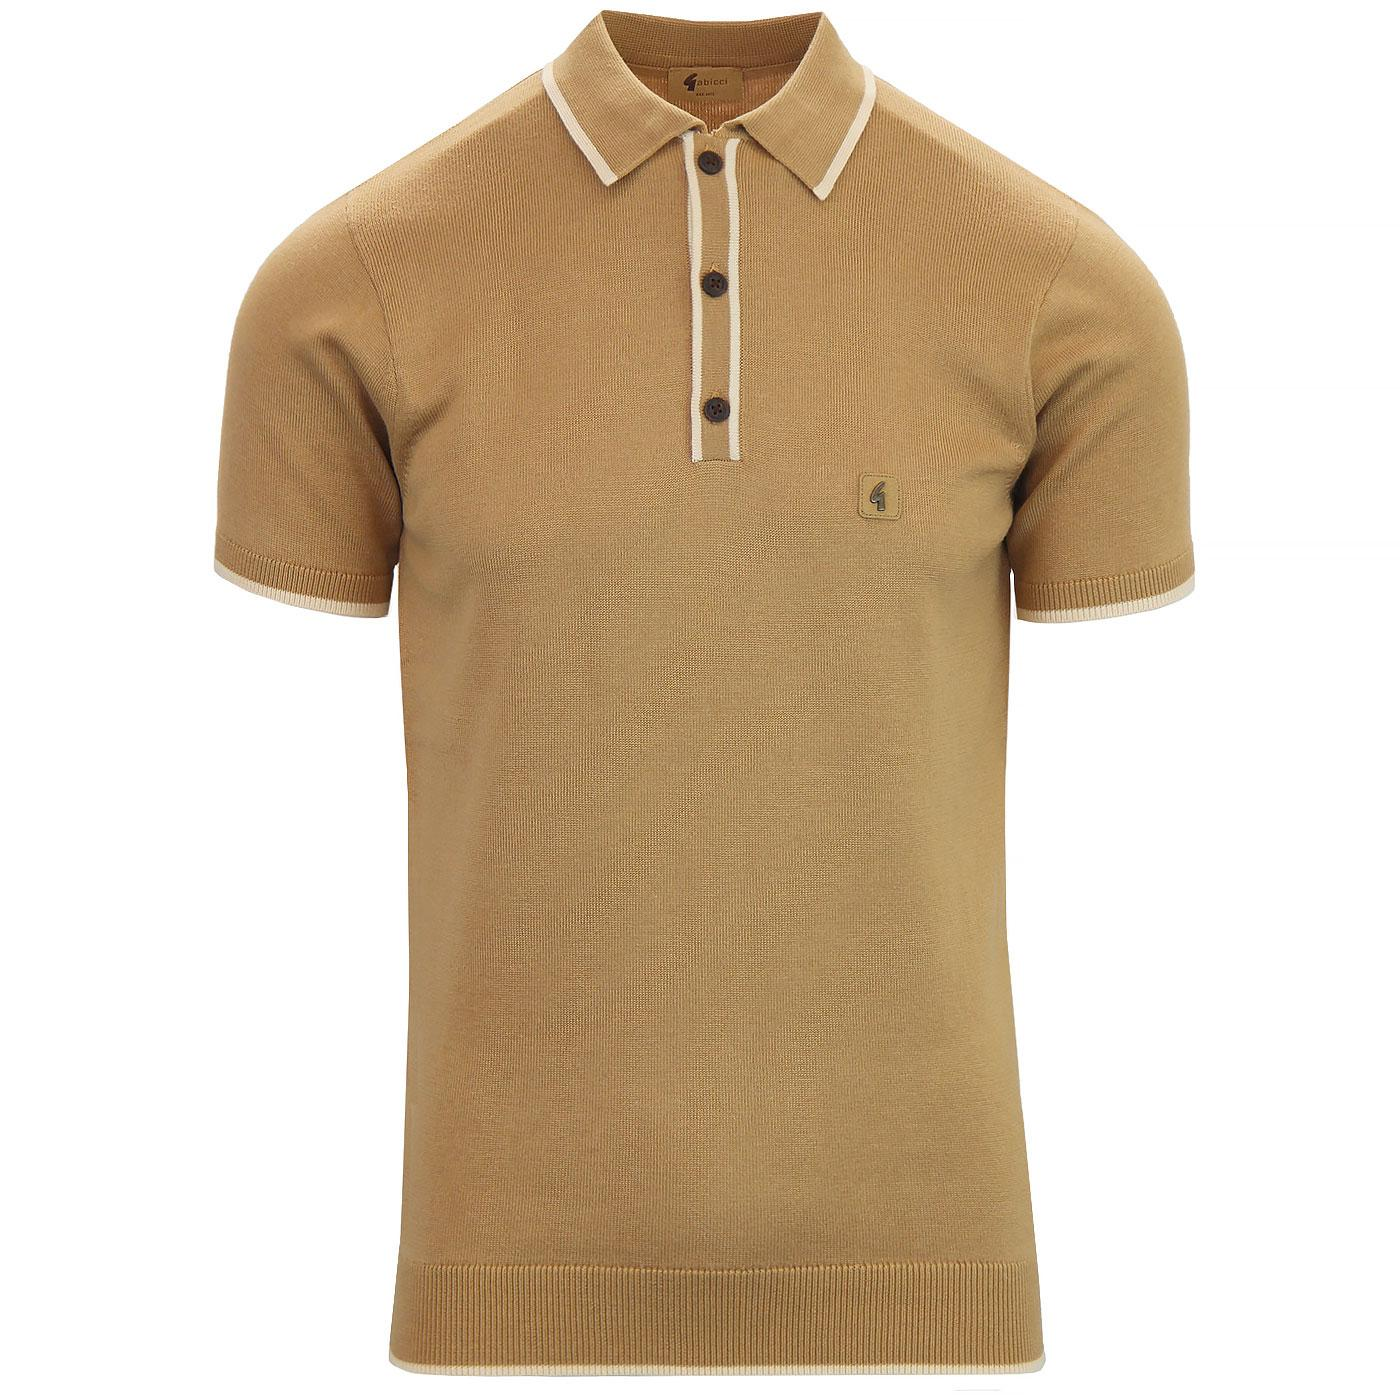 9552365e8 GABICCI VINTAGE Lineker Retro Mod Knit Polo in Butterscotch